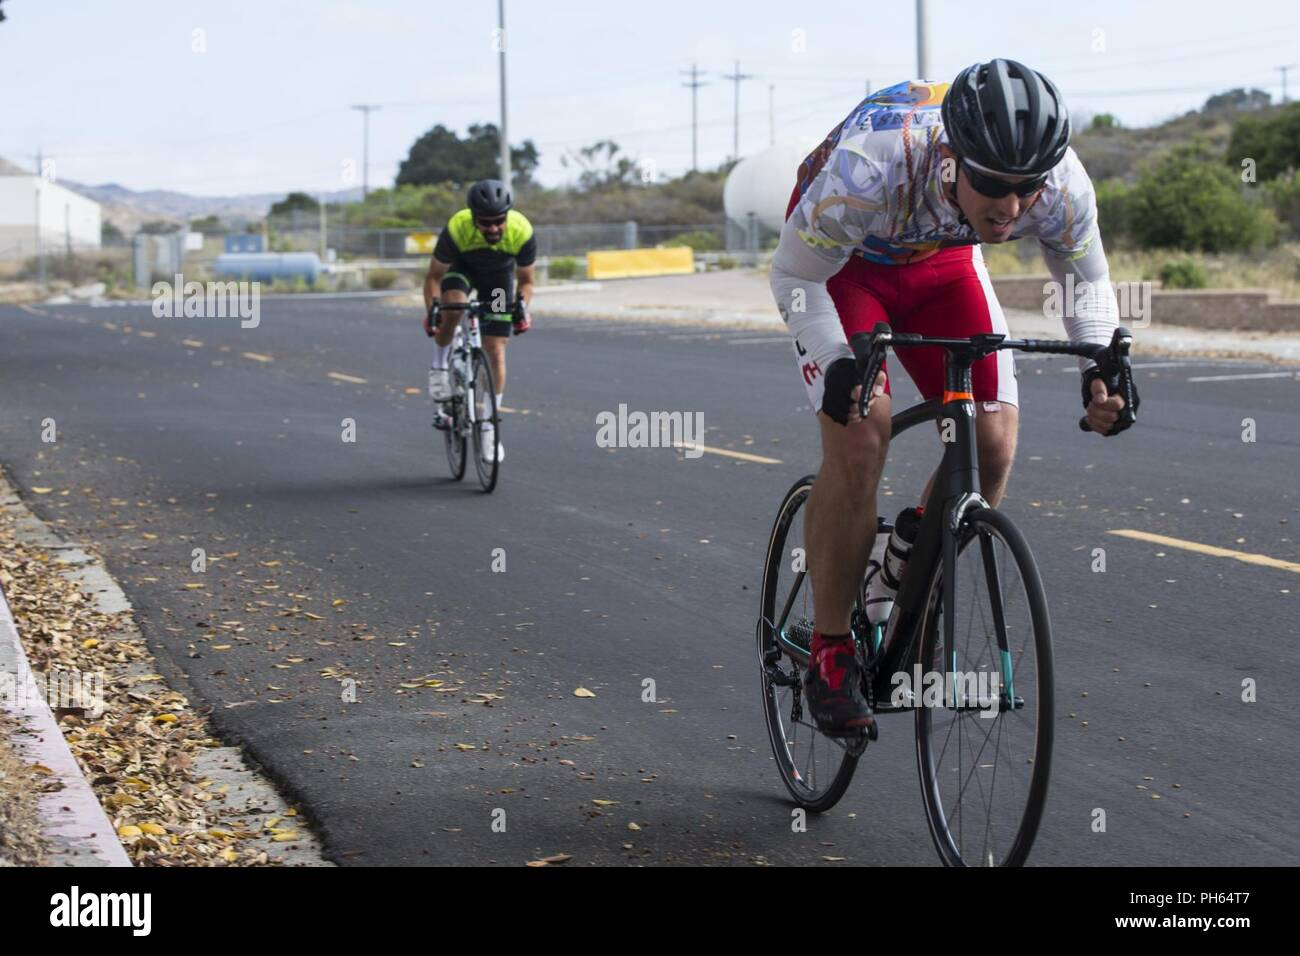 U.S. Marine Corps Staff Sgt. James Dunaway, right, infantry unit leader, Wounded Warrior Battalion-West, and retired Master Sgt. Mark Mann, left, volunteer, perform timed trials at Marine Corps Base Camp Pendleton, California, June 26, 2018. Dunaway and his coaches haved trained several months cycling over 30 miles a day, five days a week. - Stock Image